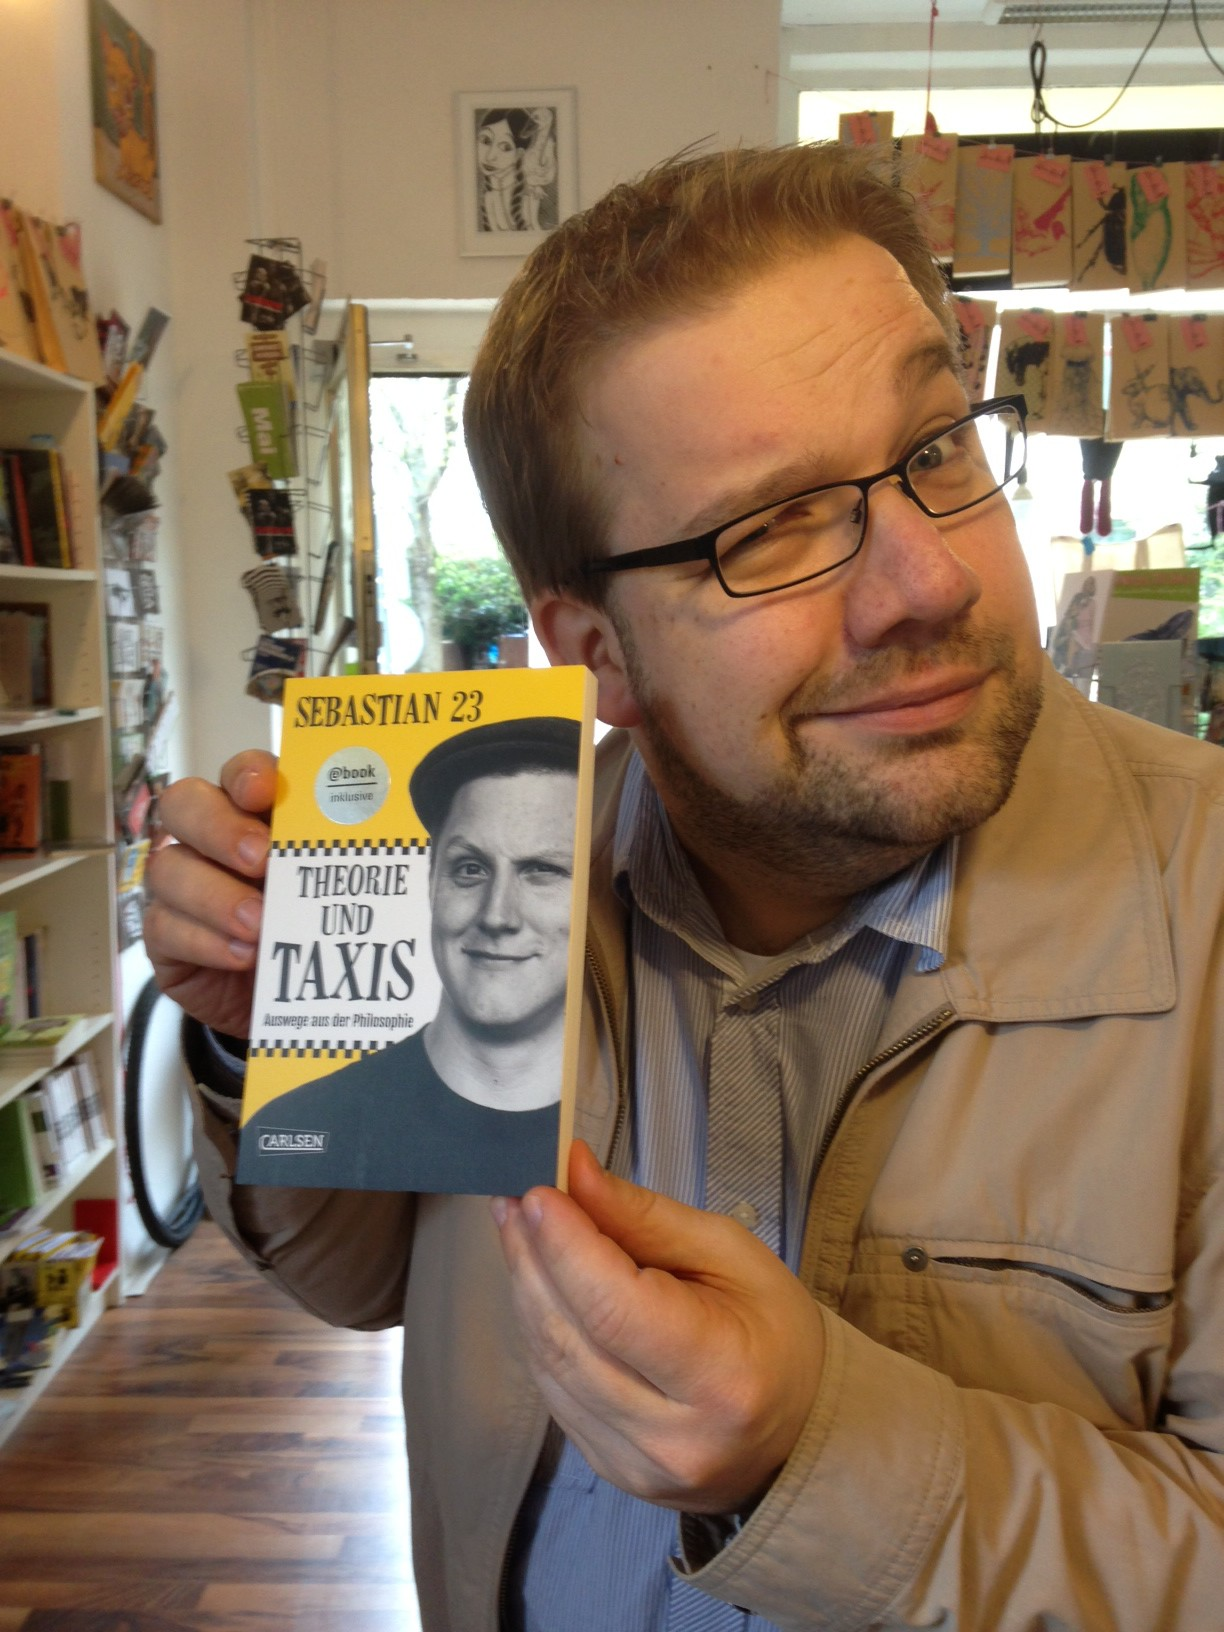 Tom - Theorie und Taxis